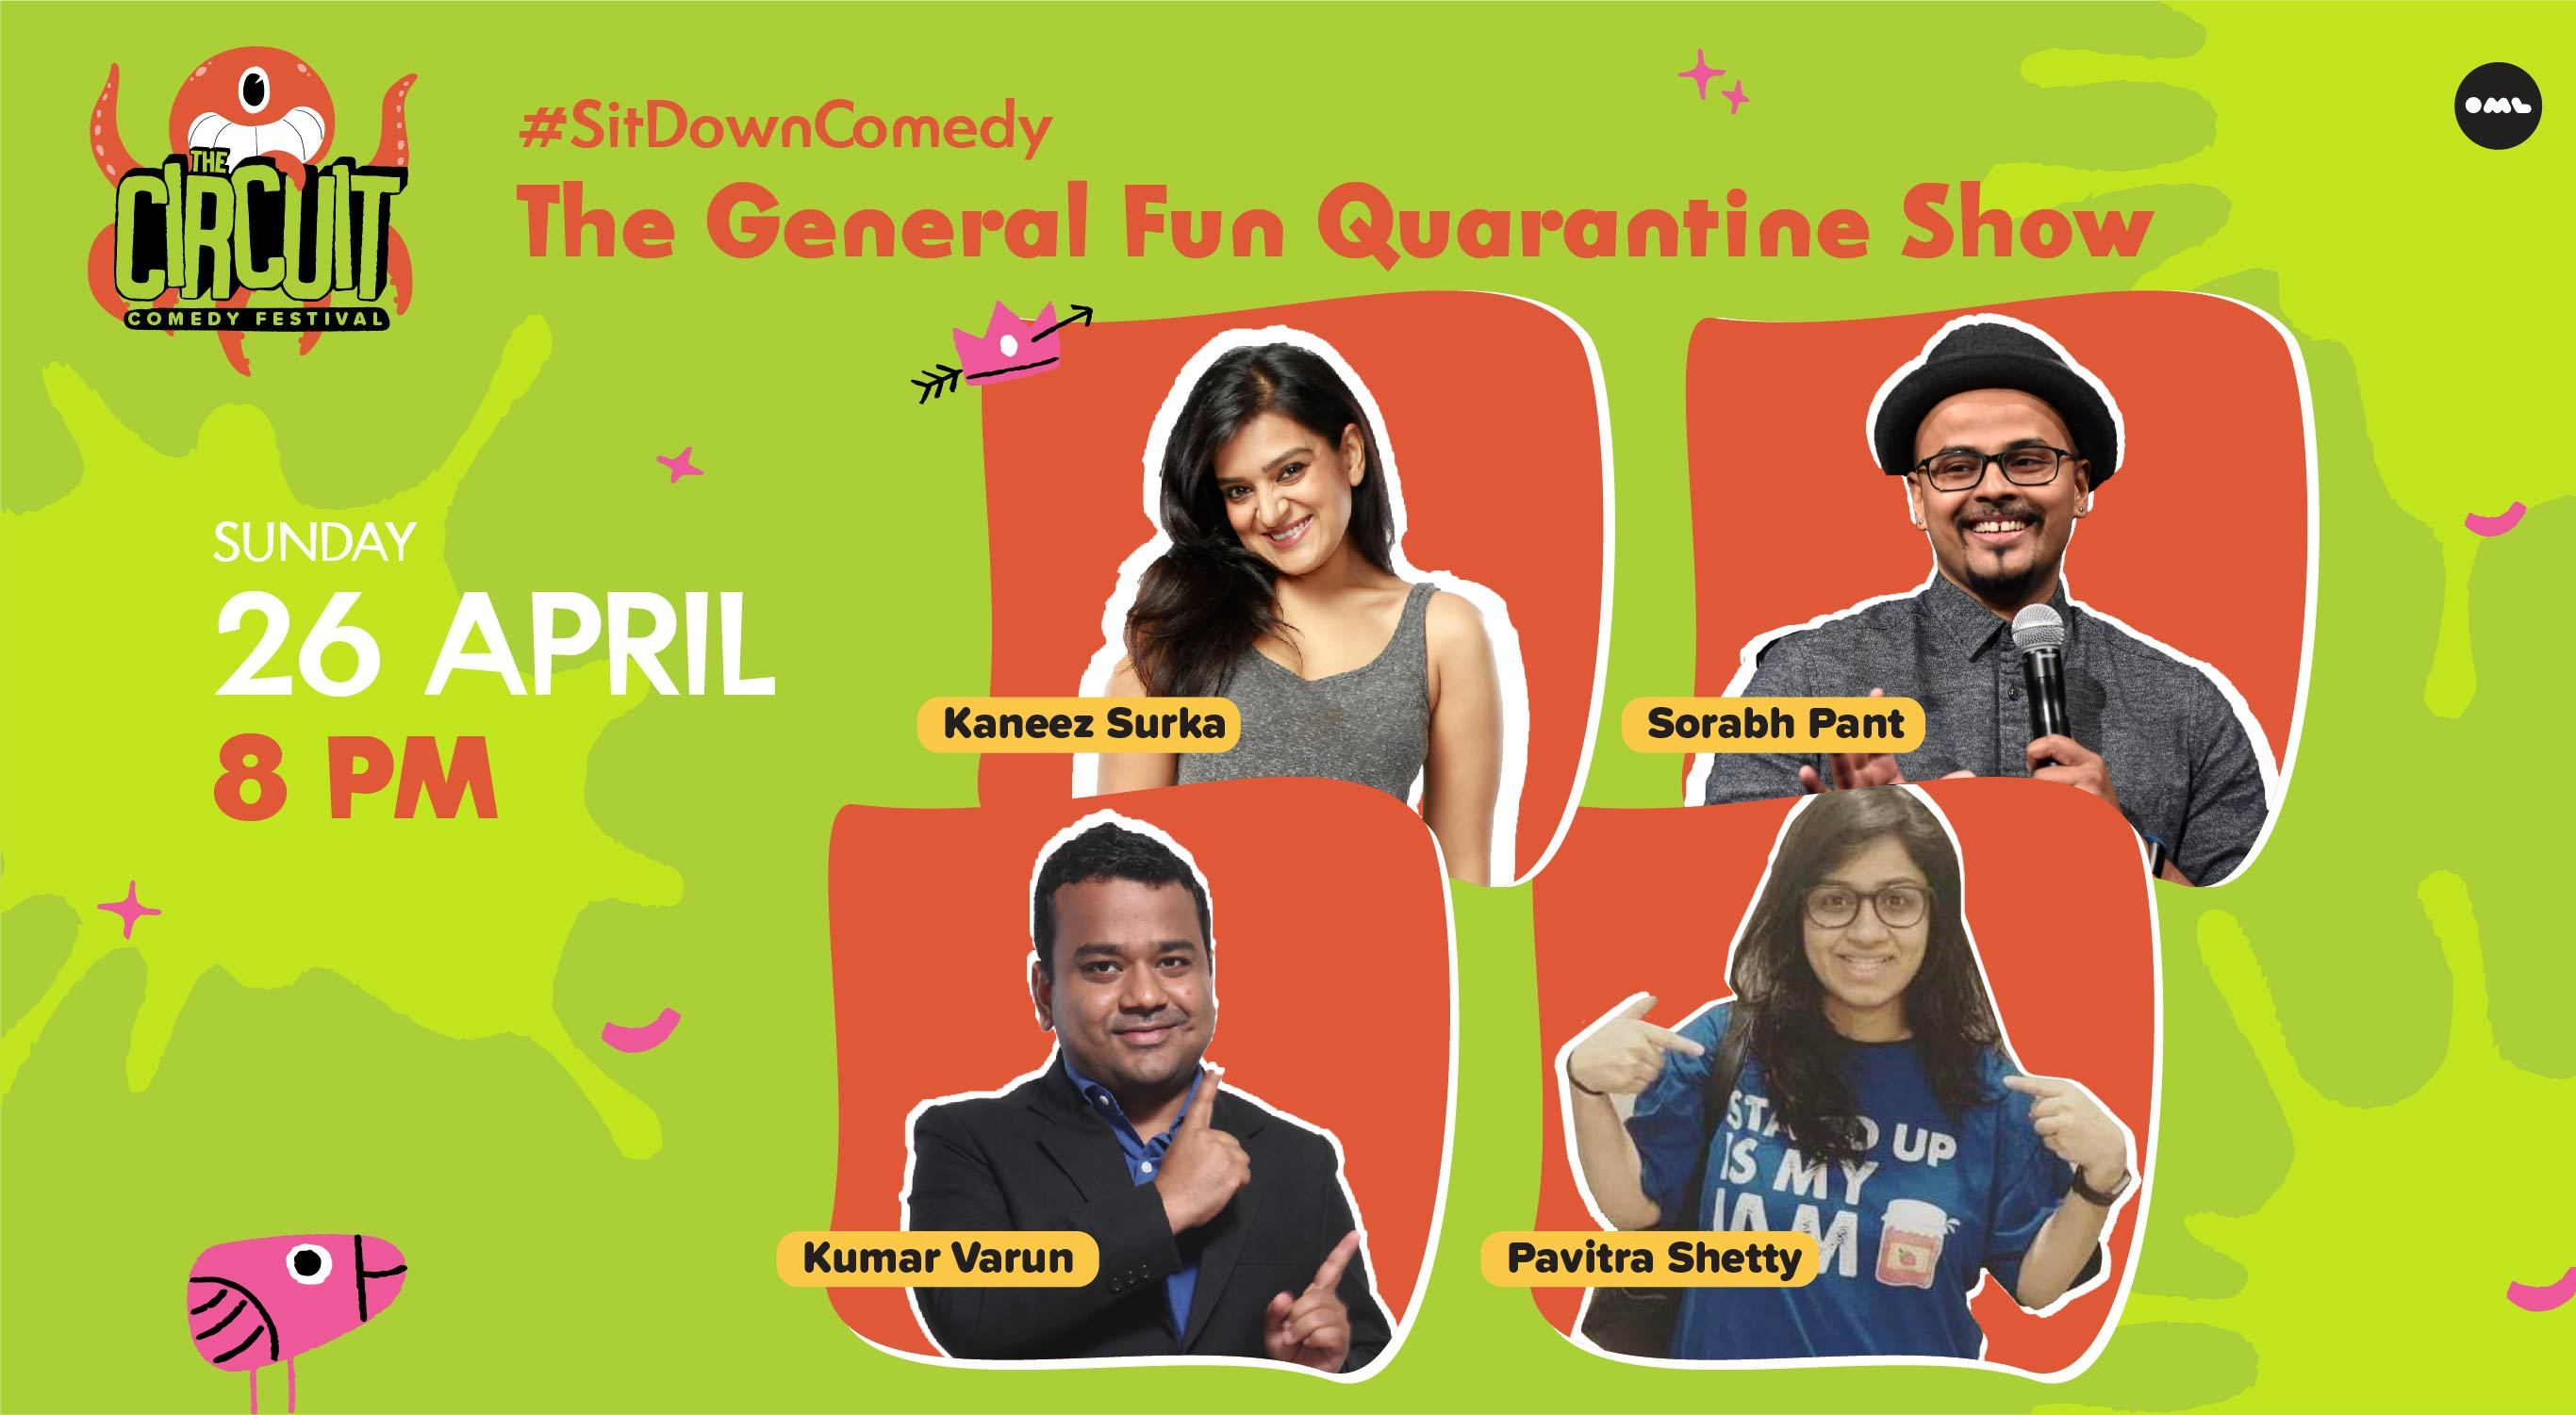 The General Fun Quarantine Show ft. Kaneez Surka